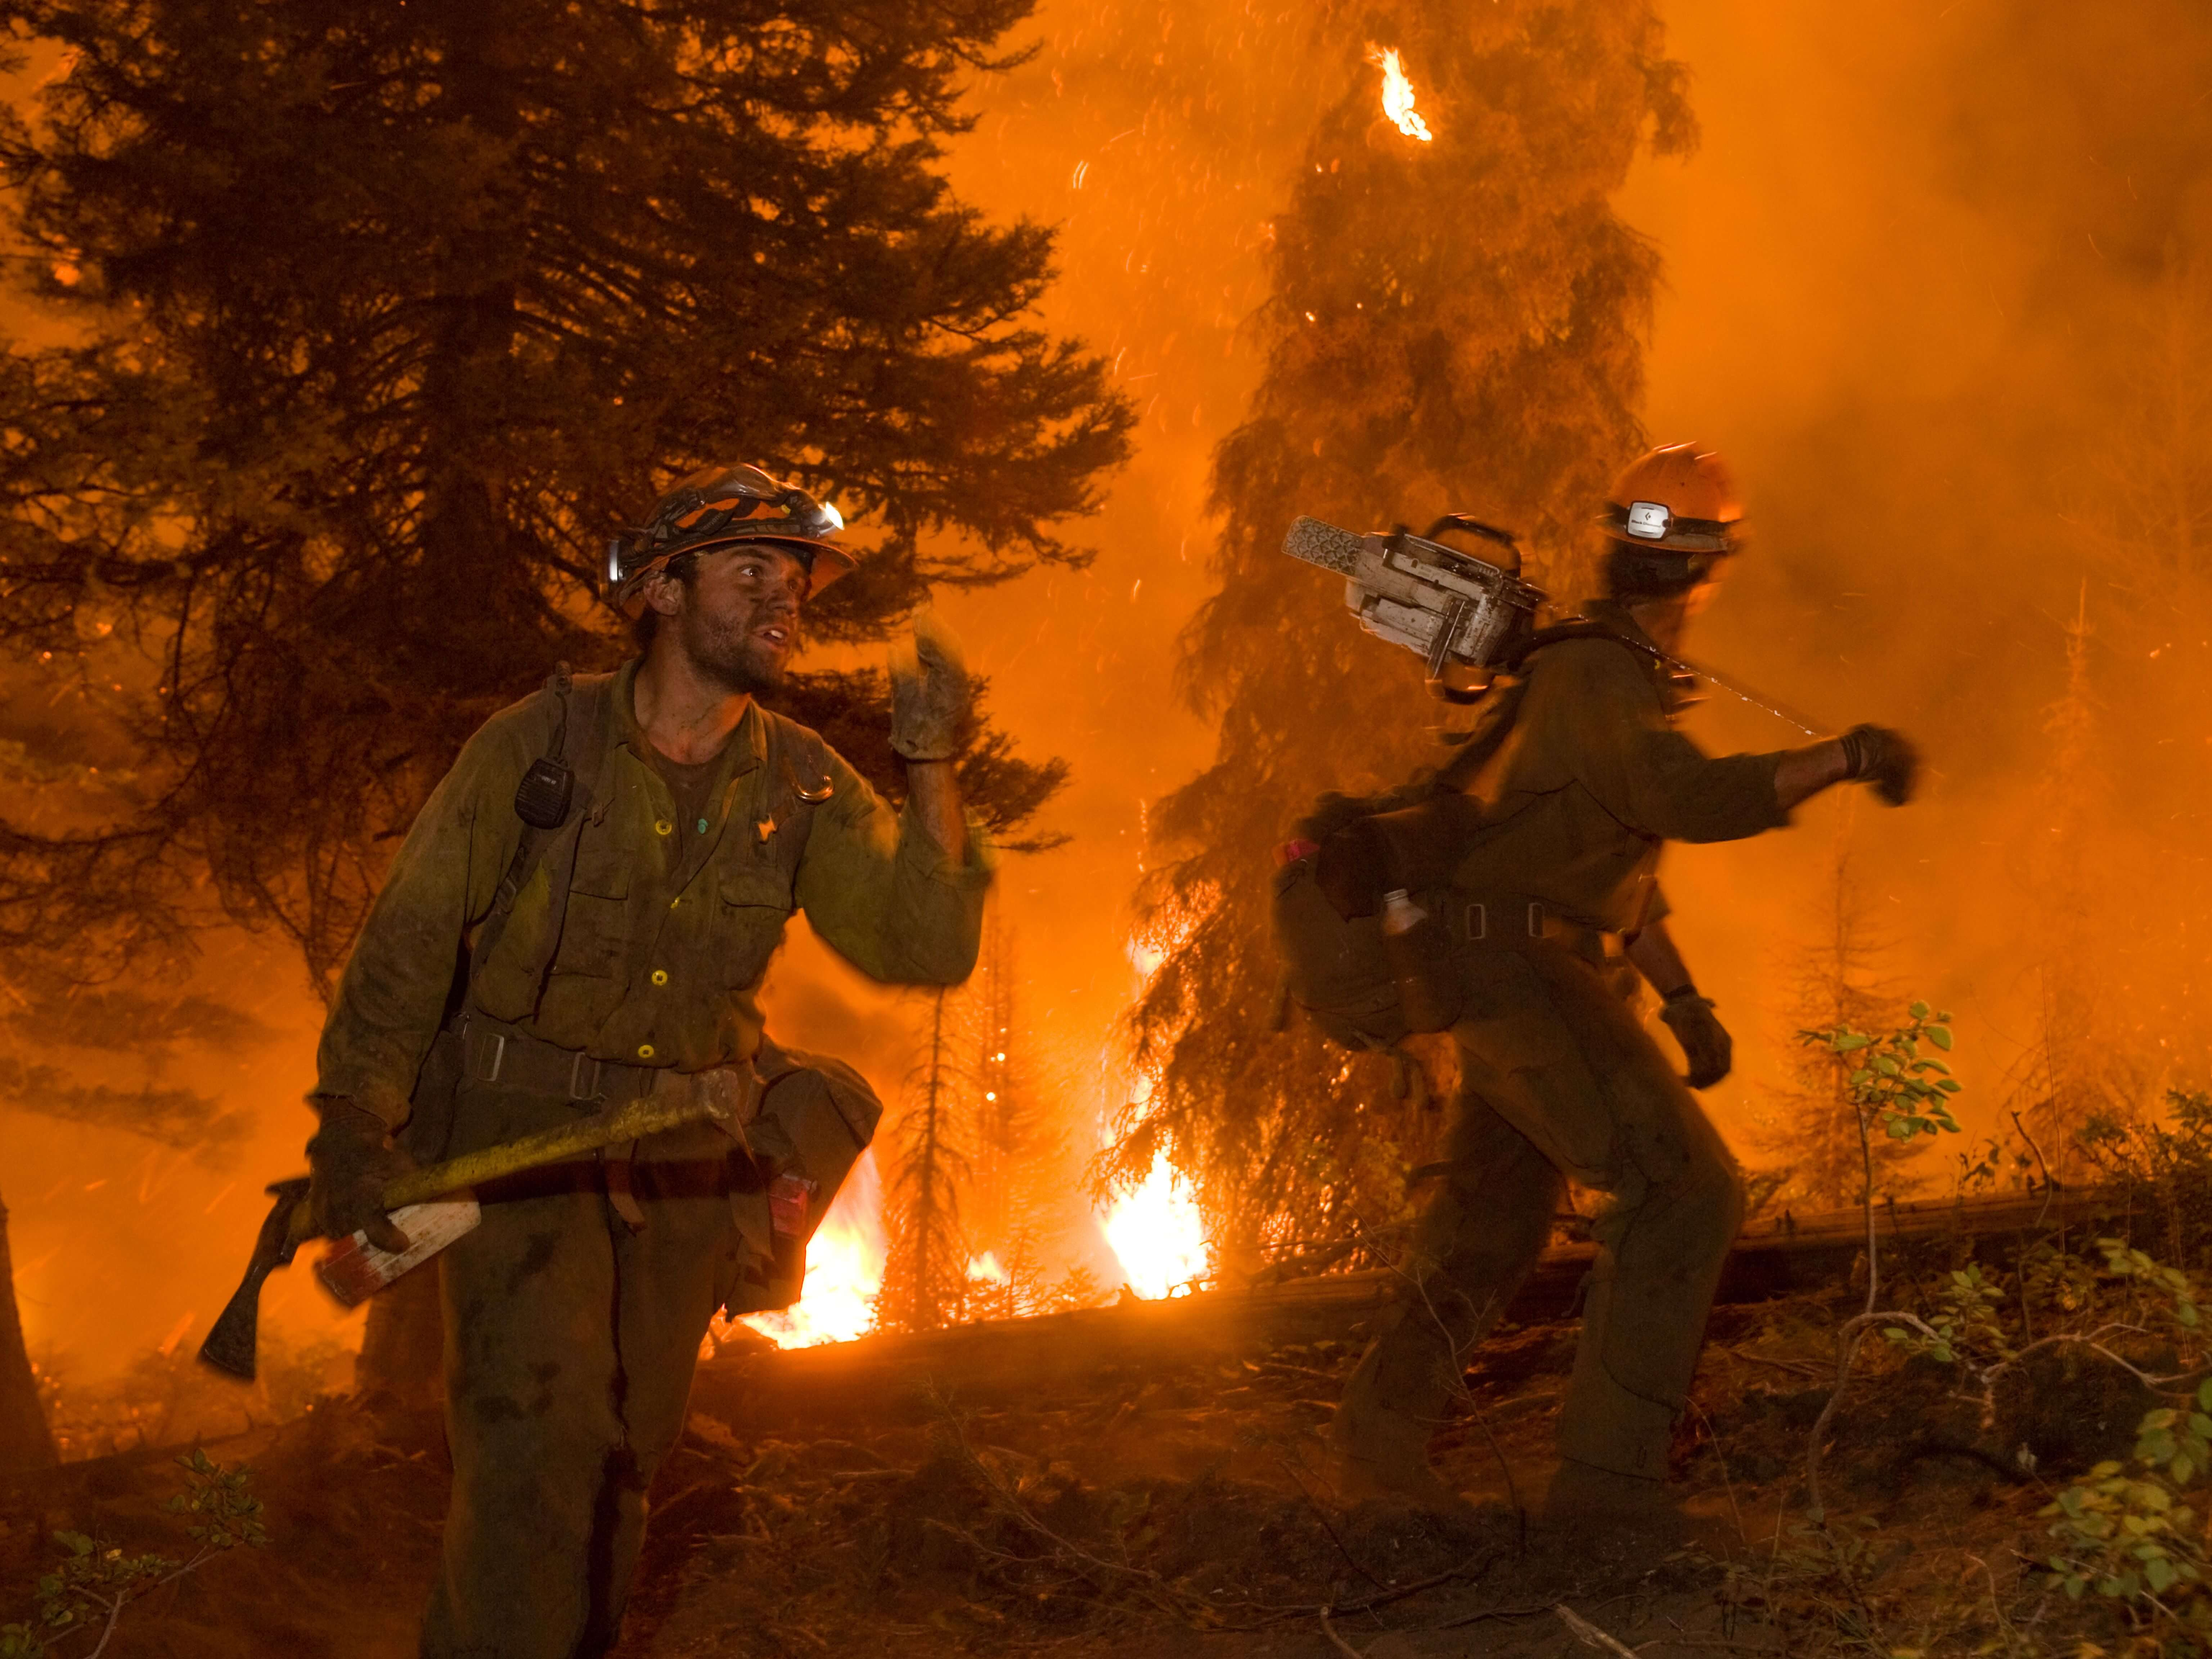 Two members of the Idaho City Hotshots work on the Springs Fire on the Boise National Forest, August, 2012. Hotshot crews are the best of the best of wildland fire fighters. They have been extensively trained to fight fires in remote areas with little or no logistical support in the most demanding conditions. (US Forest Service photo/Kari Greer) Photo Credit: USDA